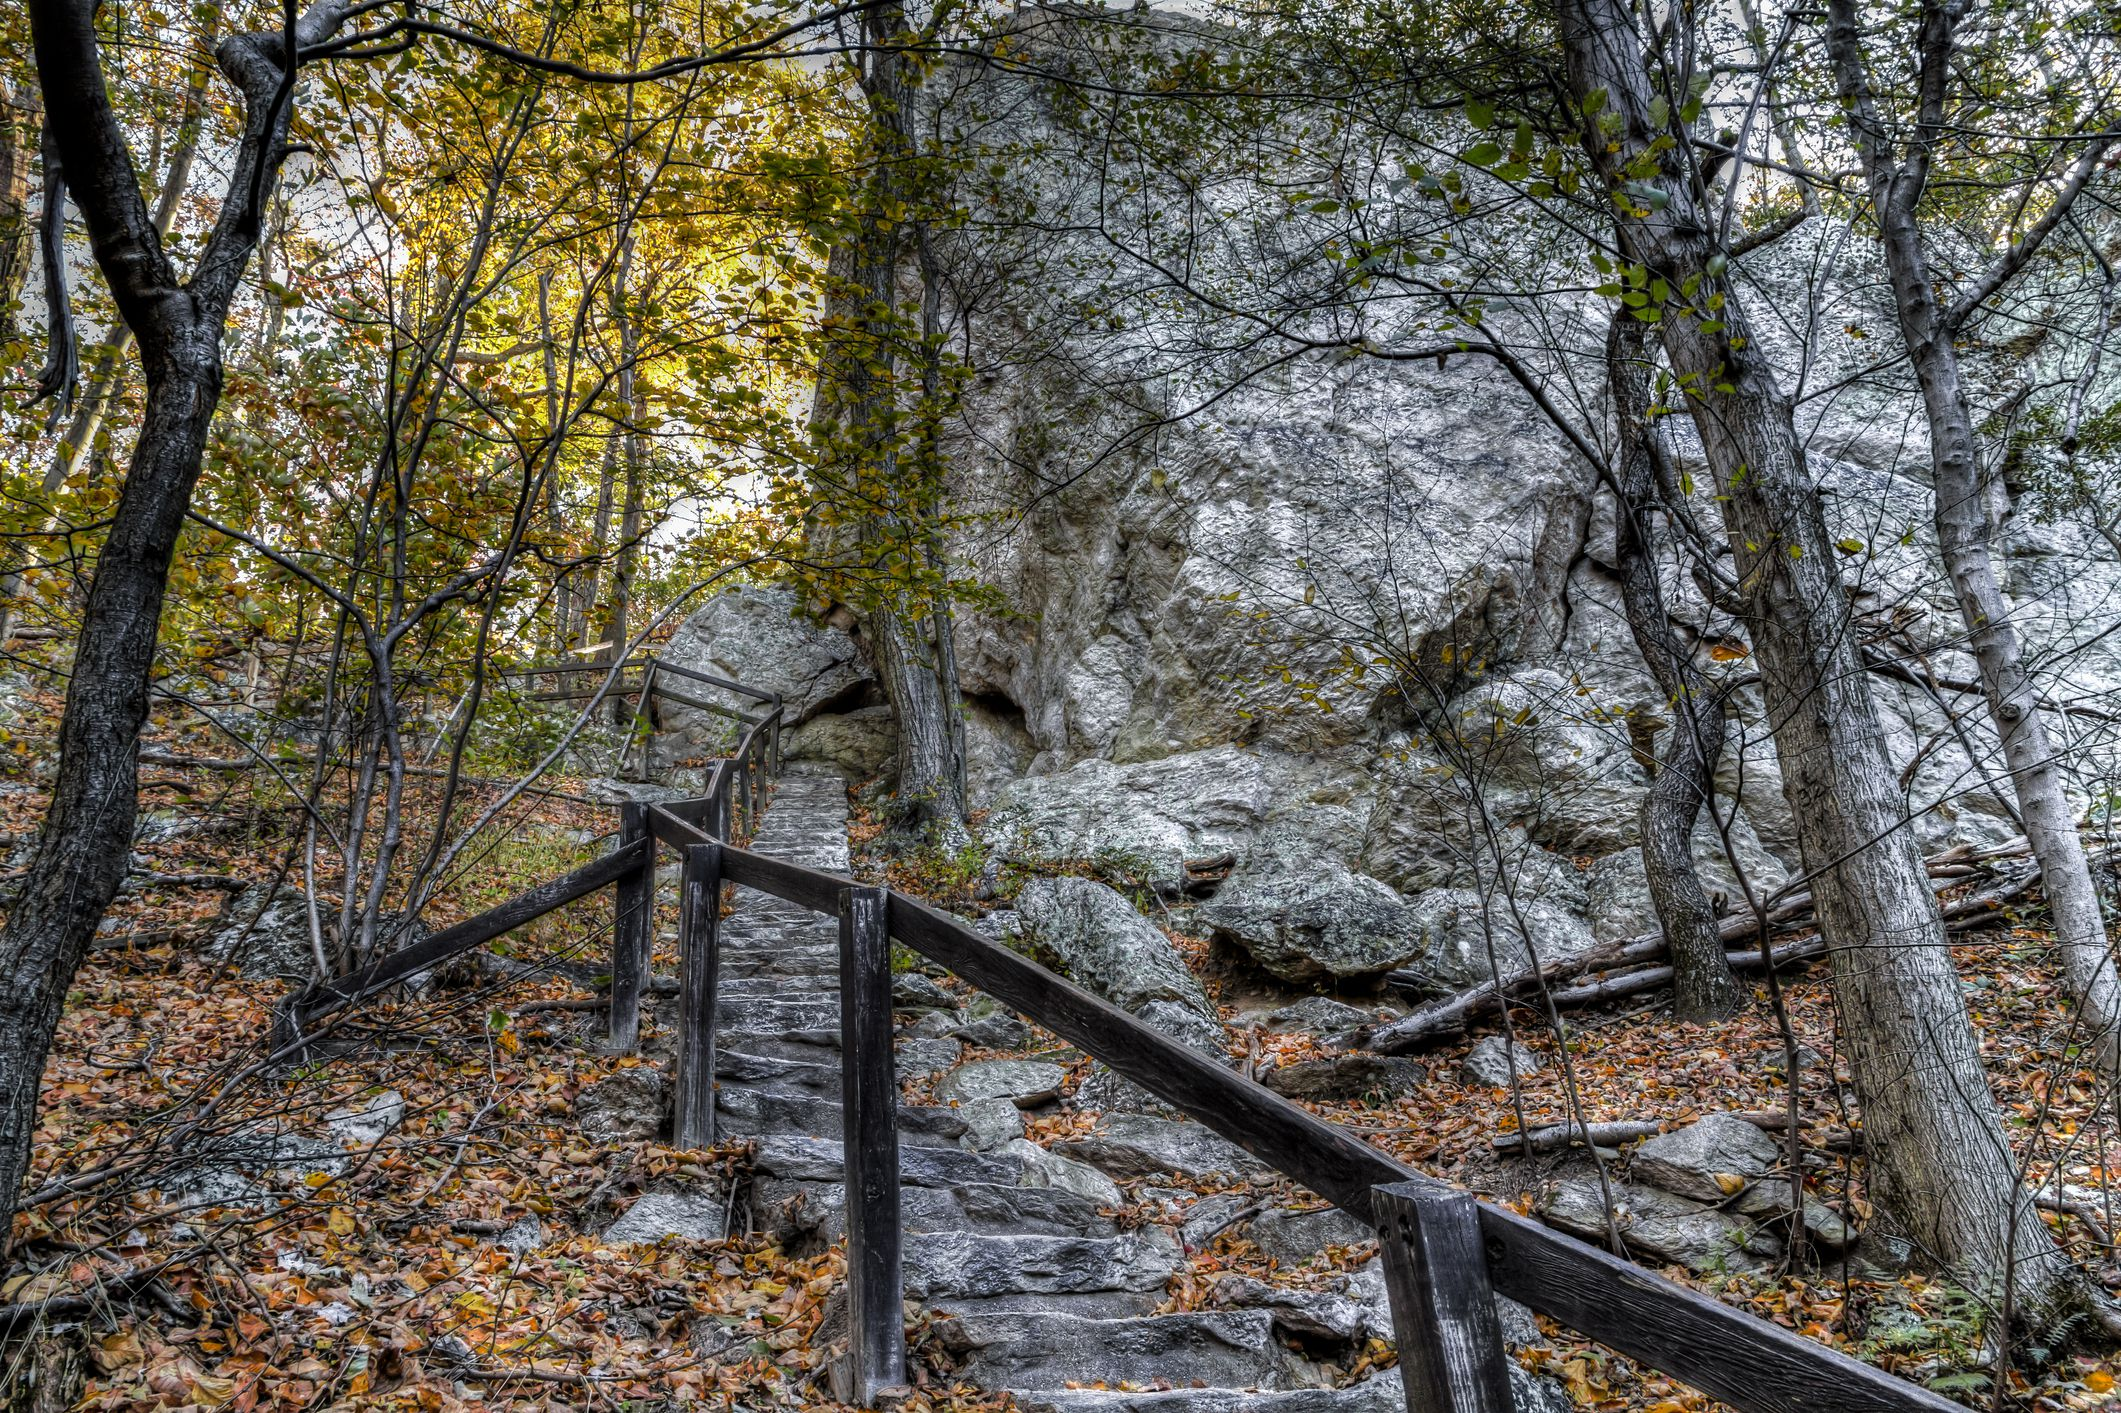 Deep Woods and Winding Stone Stairway leading to the top of Sugarloaf Mountain in Maryland.